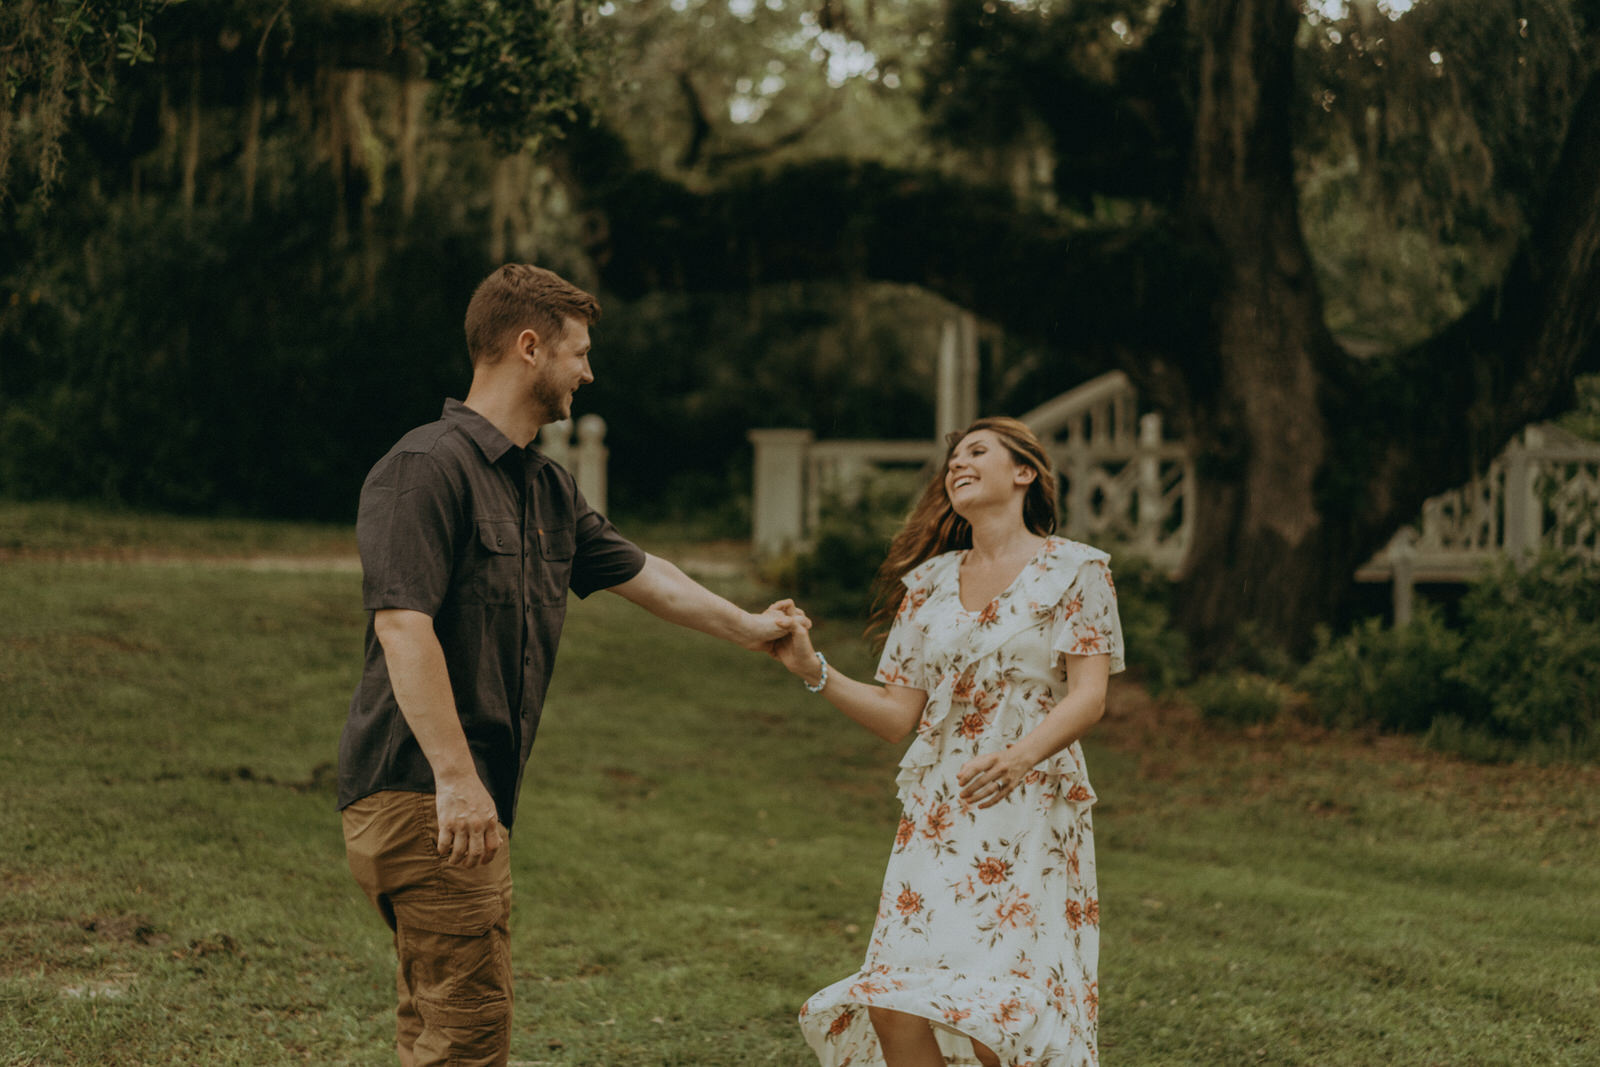 Florida Wedding Photographer-Michelle Gonzalez Photography-Koreshan State Historic Site-Rhiannon and Chris-151.jpg